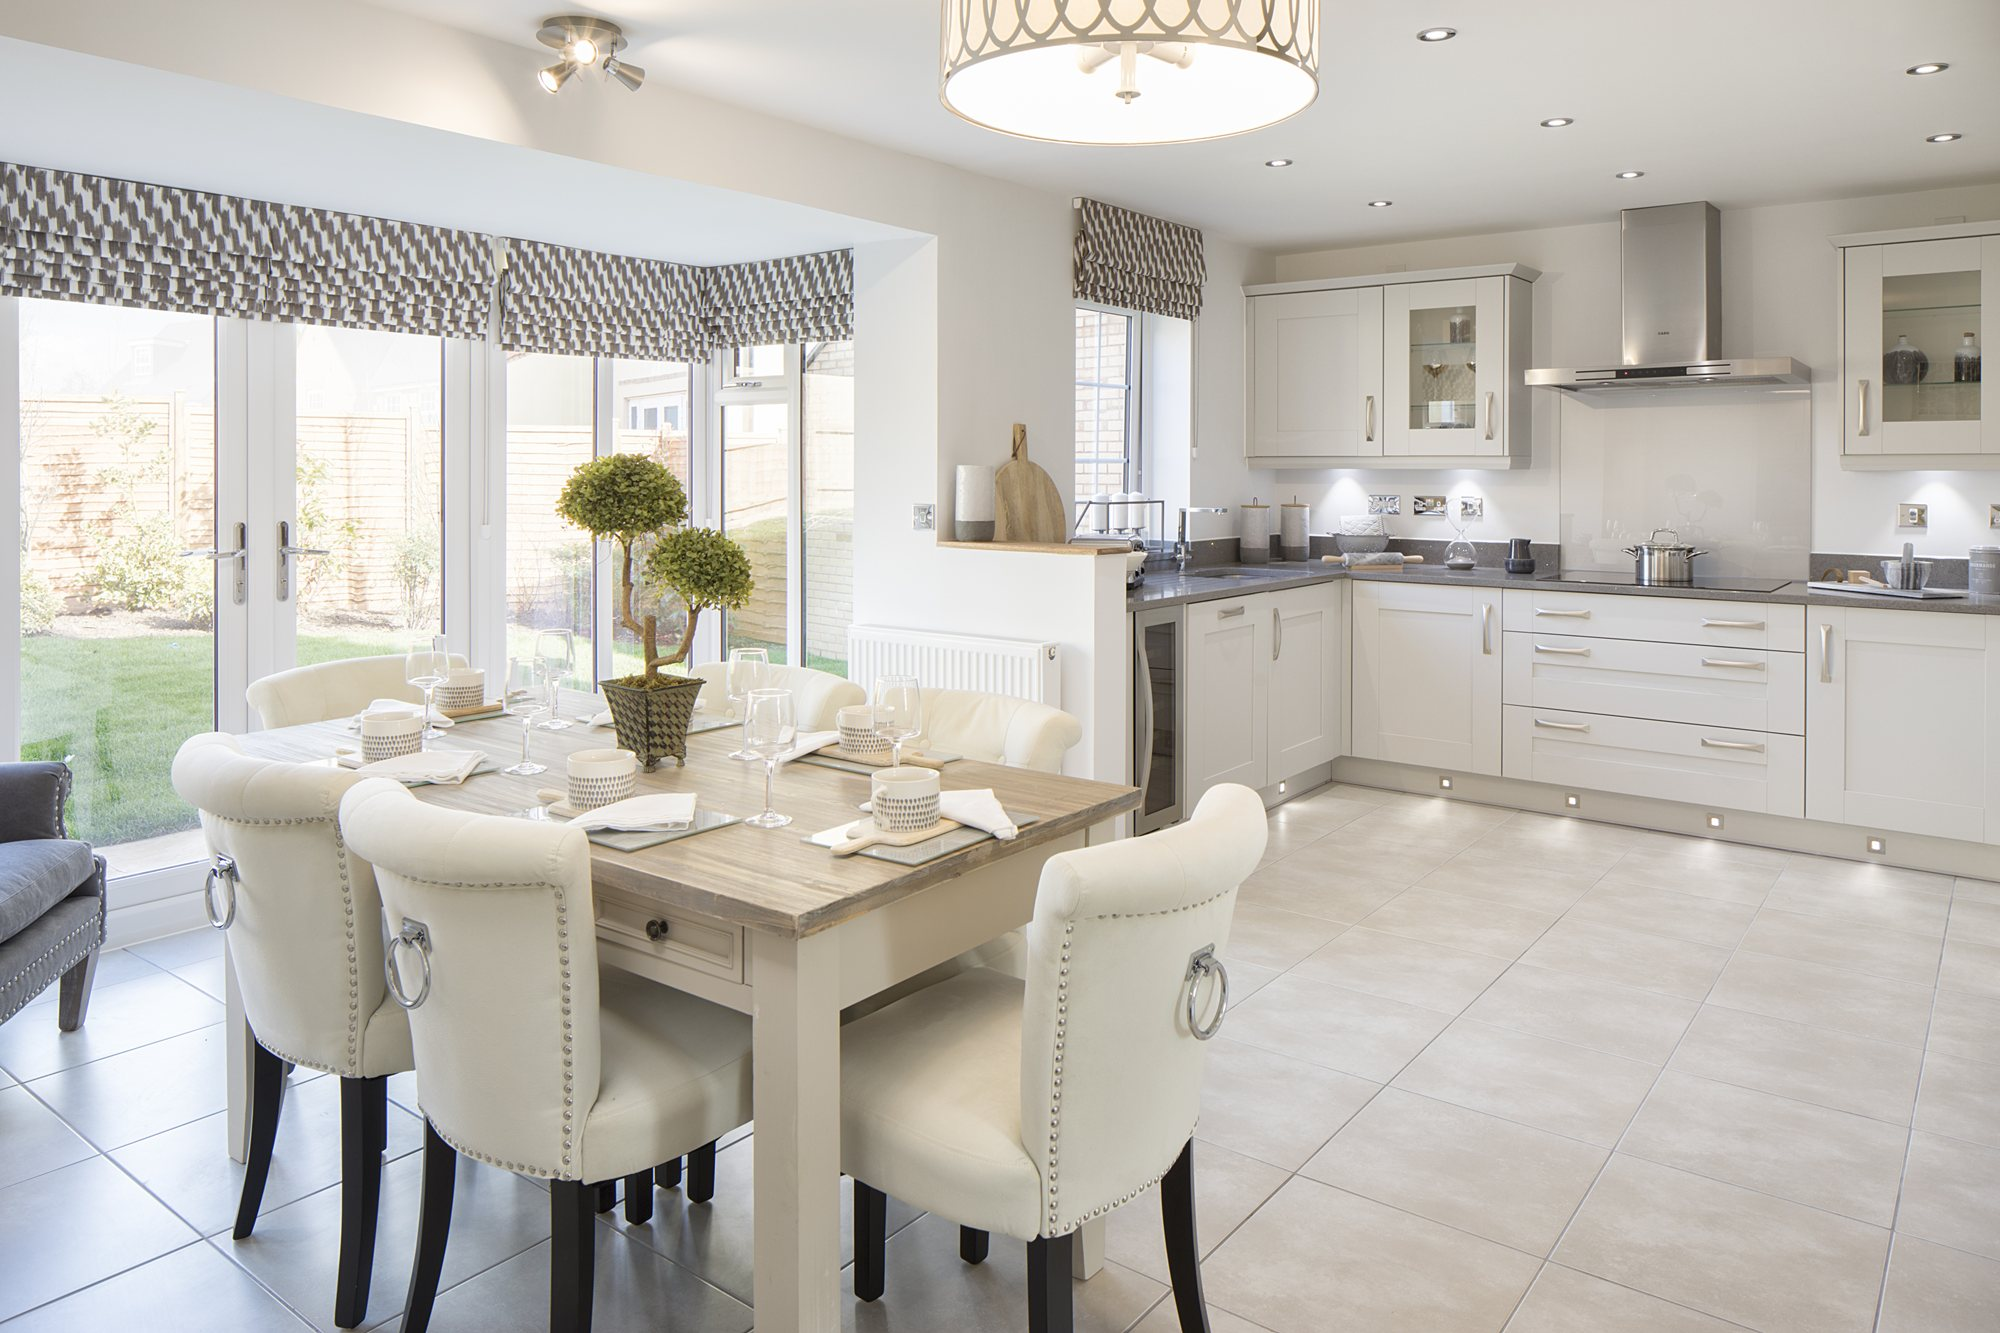 New Build Homes in Somerton